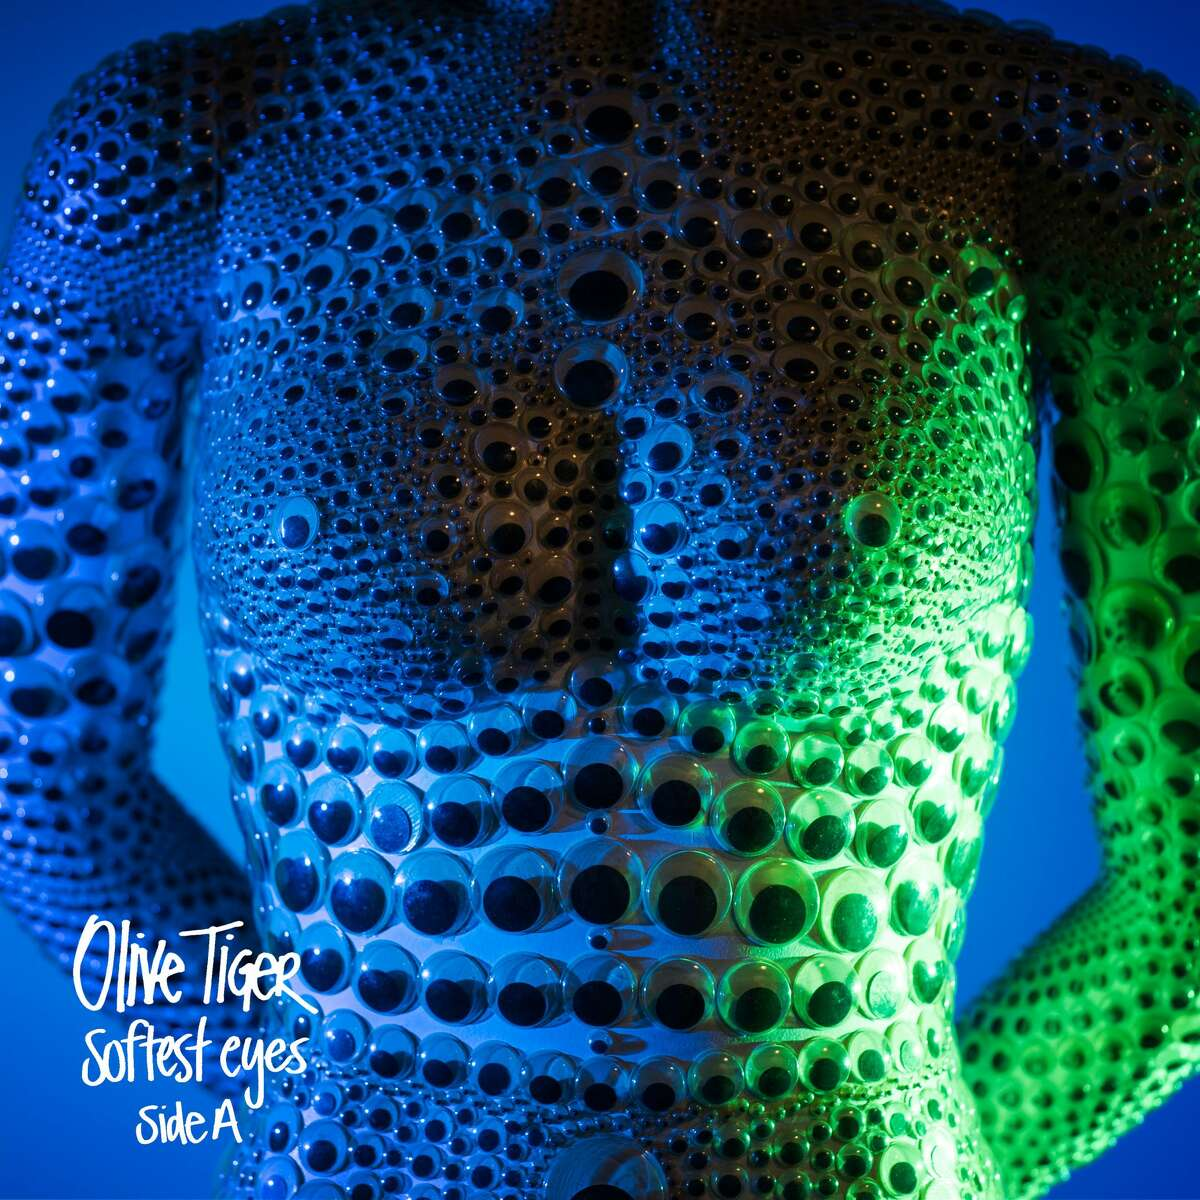 """New Haven band Olive Tiger will release their new album """"Softest Eyes: Side A"""" on July 30."""